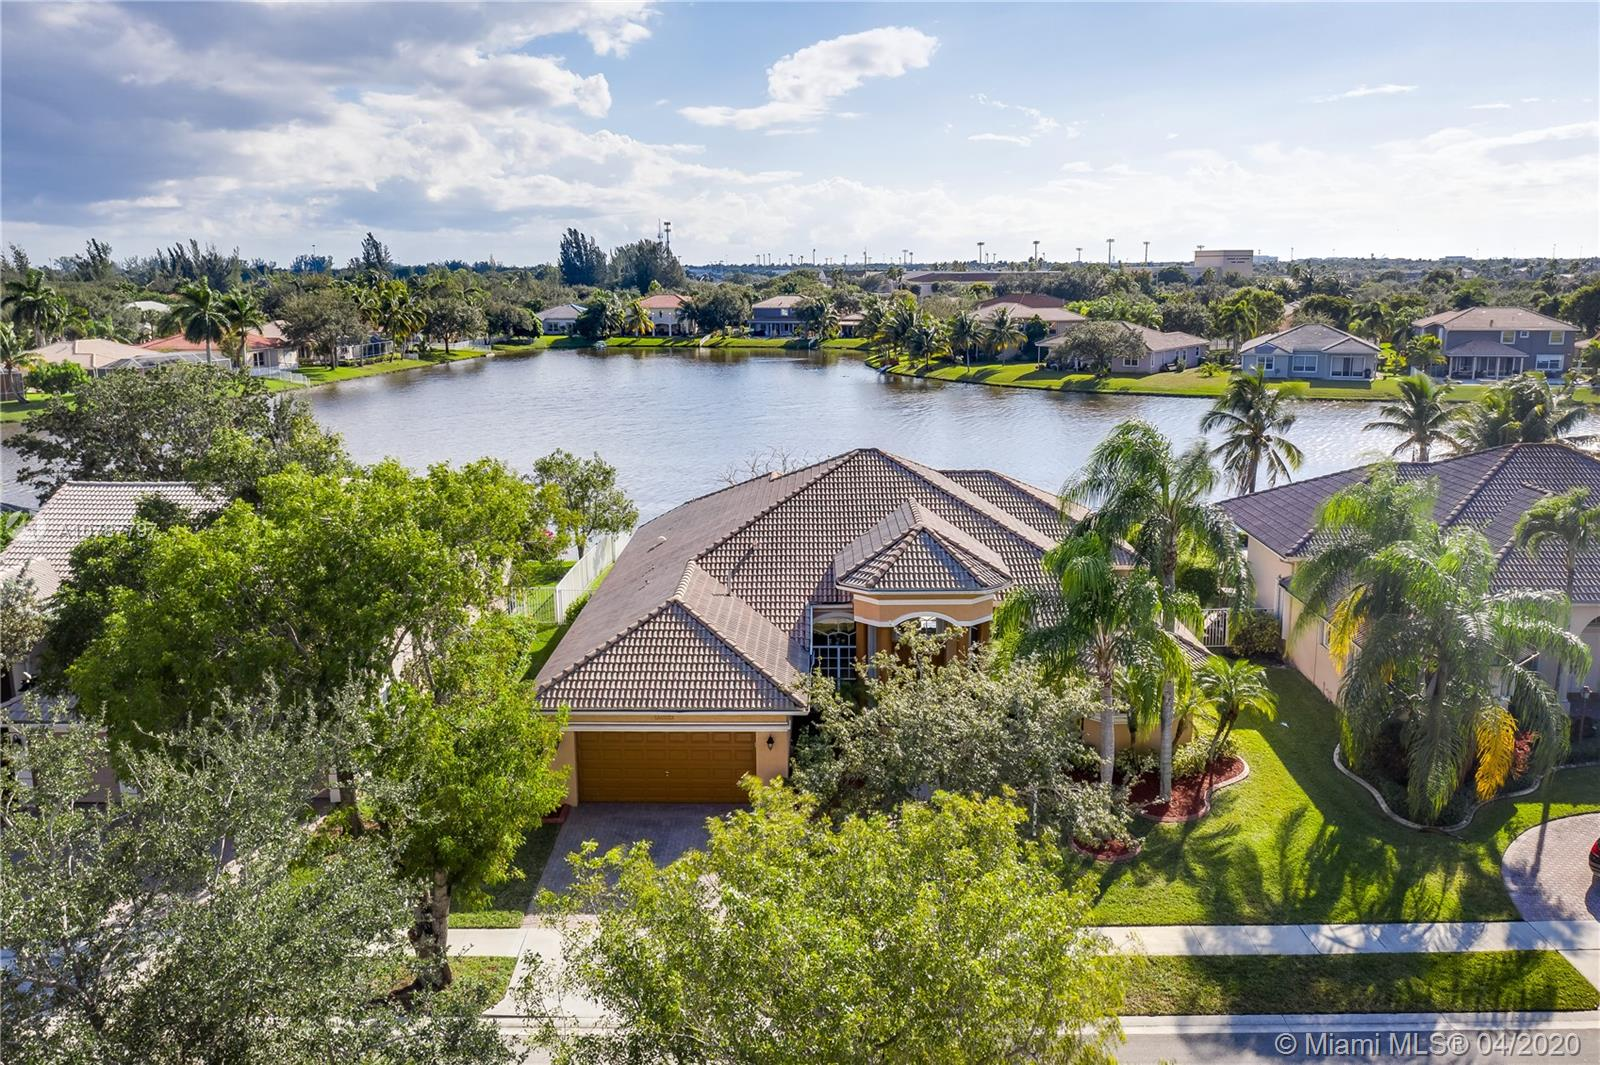 "DESIRABLE ""MONTEREY"" MODEL ON ONE OF THE MOST BEAUTIFUL LAKEFRONT LOTS IN MAJESTIC BAY IN SOUGHT AFTER PEMBROKE FALLS** BEAUTIFUL OPEN & SPACIOUS LAYOUT W/ 3 WAY SPLIT PLAN, FEATURING 4 BEDS PLUS A DEN/OFFICE AND 3 BATHROOMS ** UPGRADED KITCHEN W/ WOODEN CABINETS, SS APPLIANCES & GRANITE COUNTERTOPS** UNIQUE EXTENDED BREAKFAST NOOK W/ BAY WINDOWS OVERLOOKING WATER VIEWS** ELEGANT MARBLE FLOORING THROUGHOUT LIVING AREAS**MASTER SUITE W/ LARGE MASTER BATH** EXTENDED PATIO W/ HUGE LOT AND PLENTY OF ROOM FOR A POOL**LARGER FRONT WINDOWS**ACCORDION SHUTTERS** ""EVERYTHING YOU NEED"" GATED COMMUNITY W/ STATE OF THE ART REC CENTER, POOL, TENNIS COURTS, CLUBHOUSE & MORE* COMMUNITY OFFERS NATURAL GAS TO ITS RESIDENTS**VIRTUAL SHOWINGS AVAILABLE. PLEASE CONTACT LISTING AGENT FOR AN APPOINTMENT.**"